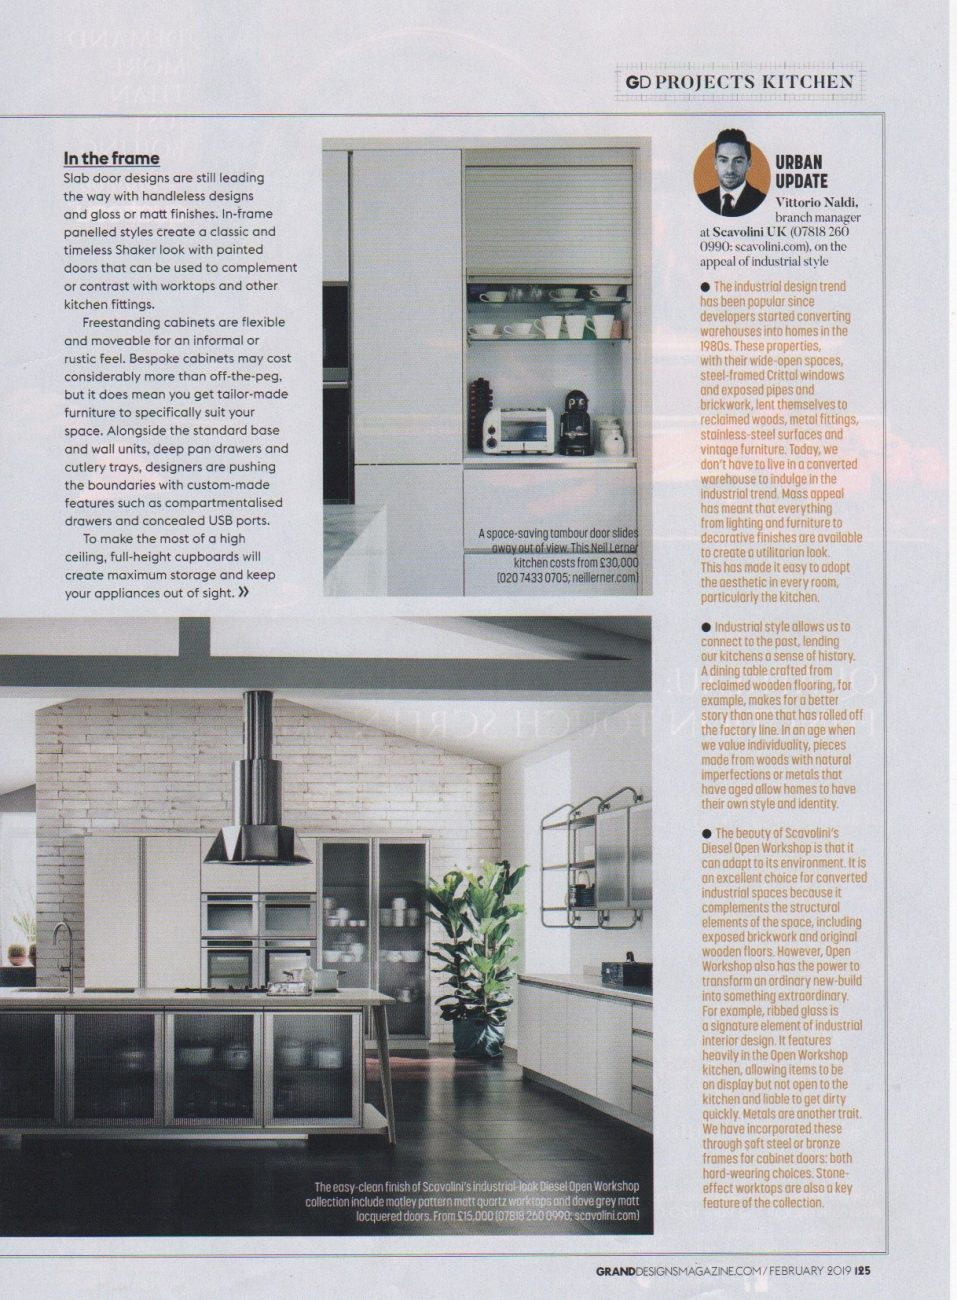 Part 3 of an article in Grand Designs magazine on design ideas for cabinets